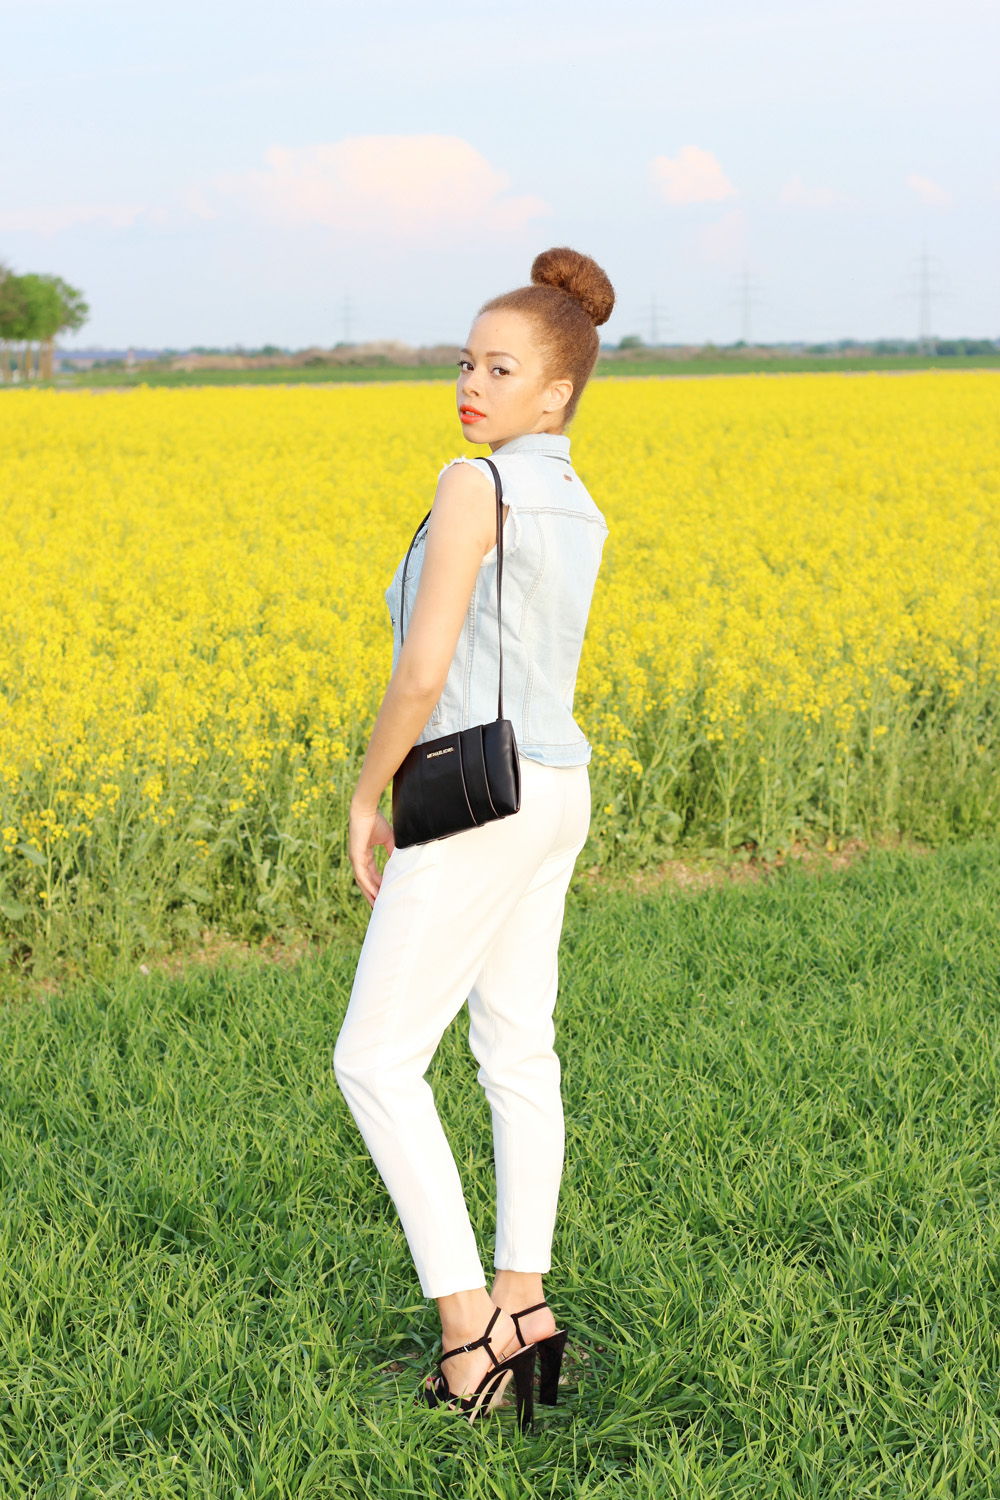 fatimayarie-whitejumper-redhair-michaelkors-clutch-jeans-img_3598